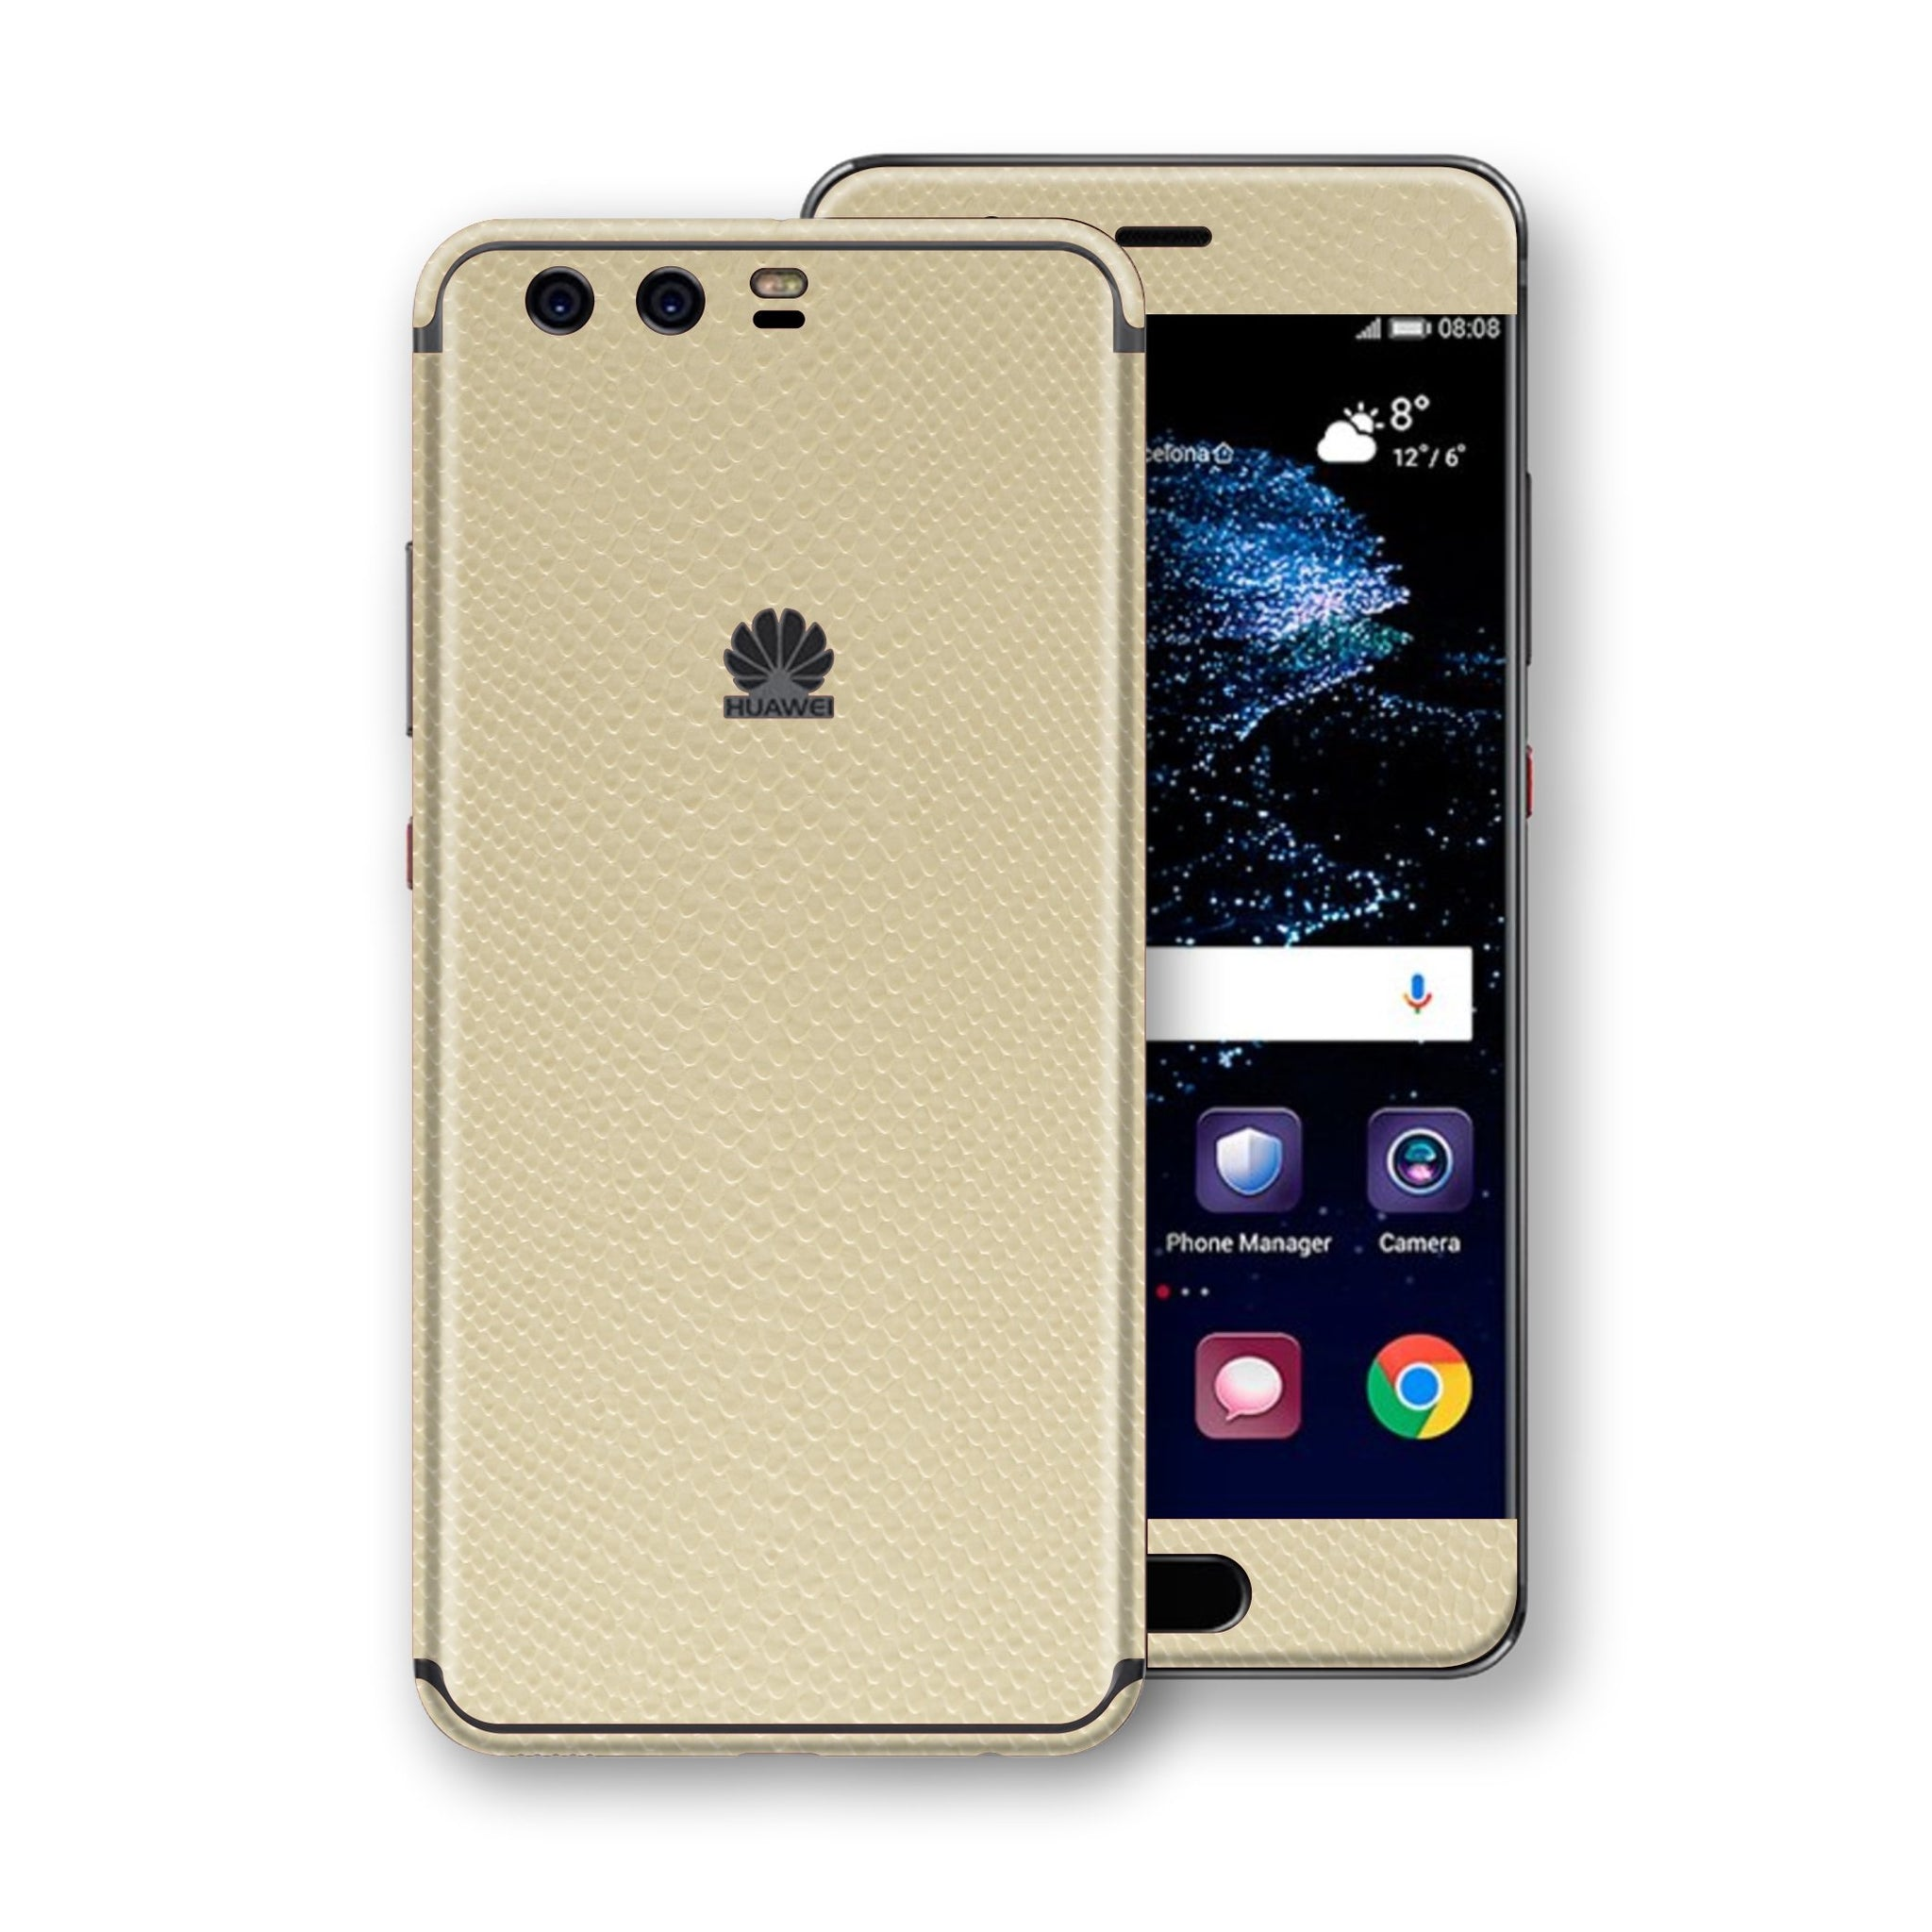 Huawei P10+ PLUS  Beige Mamba Snake Leather Skin, Decal, Wrap, Protector, Cover by EasySkinz | EasySkinz.com